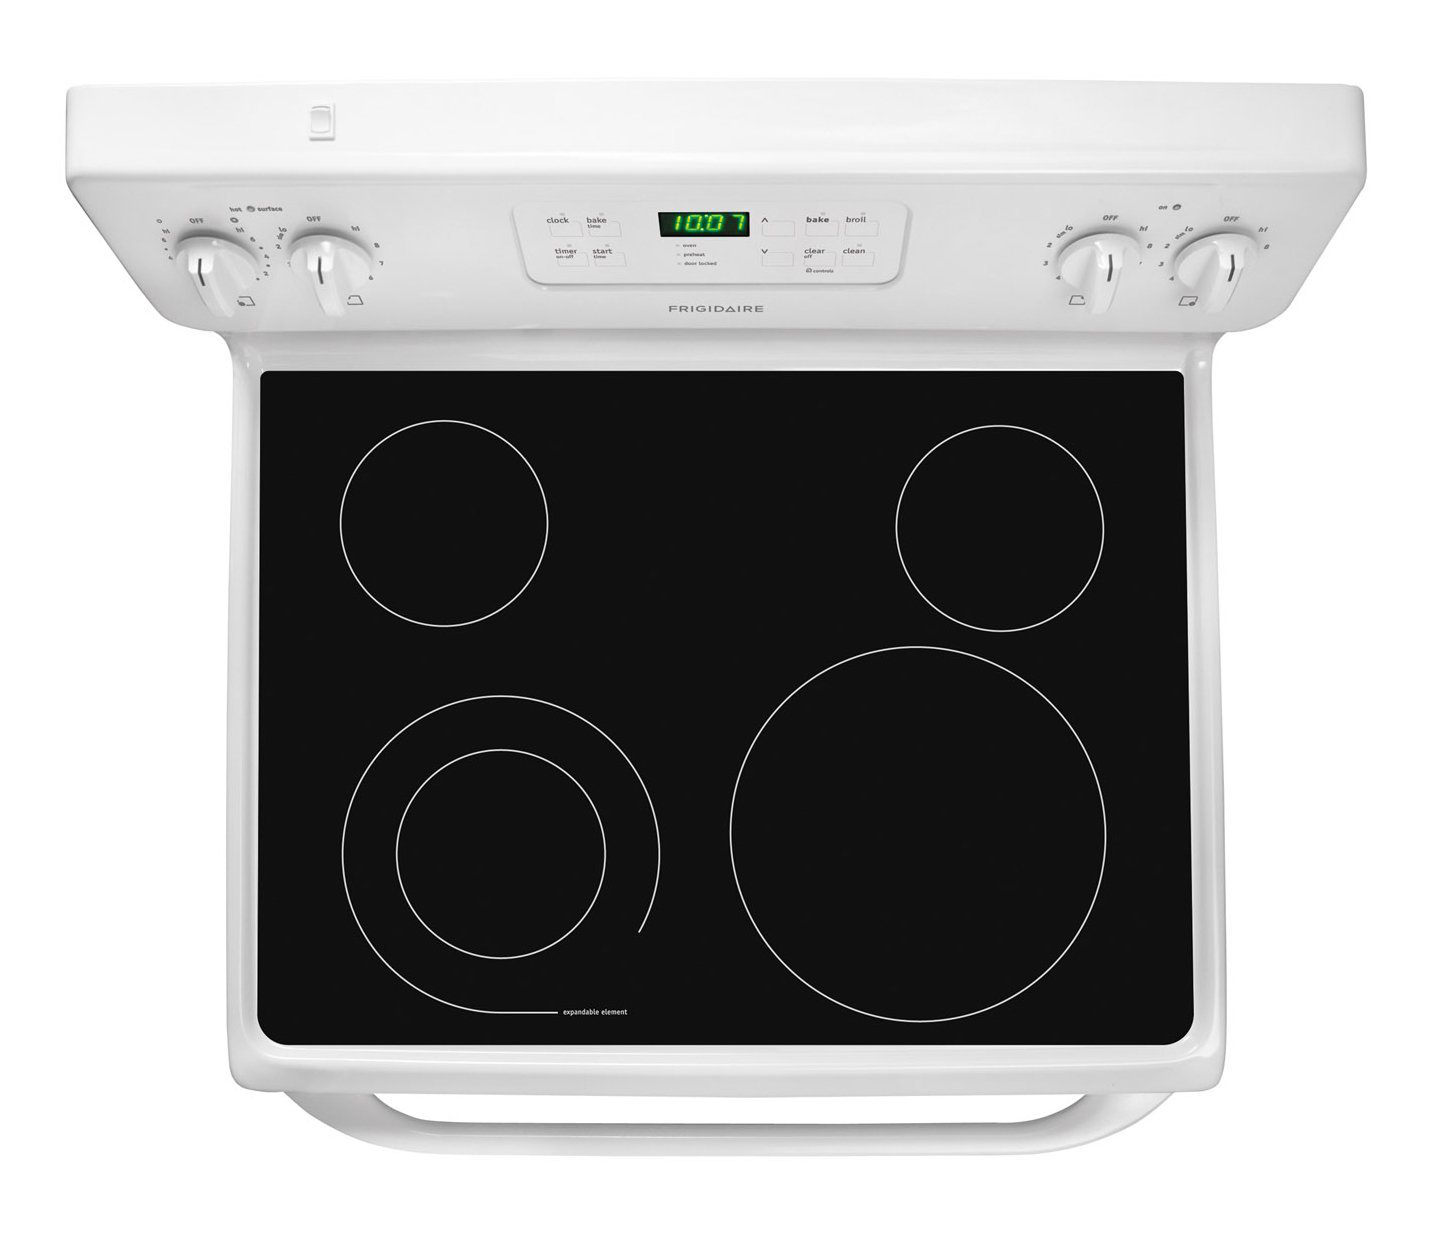 Top view of the Frigidaire 30 Inch Electric Coil Top Stove